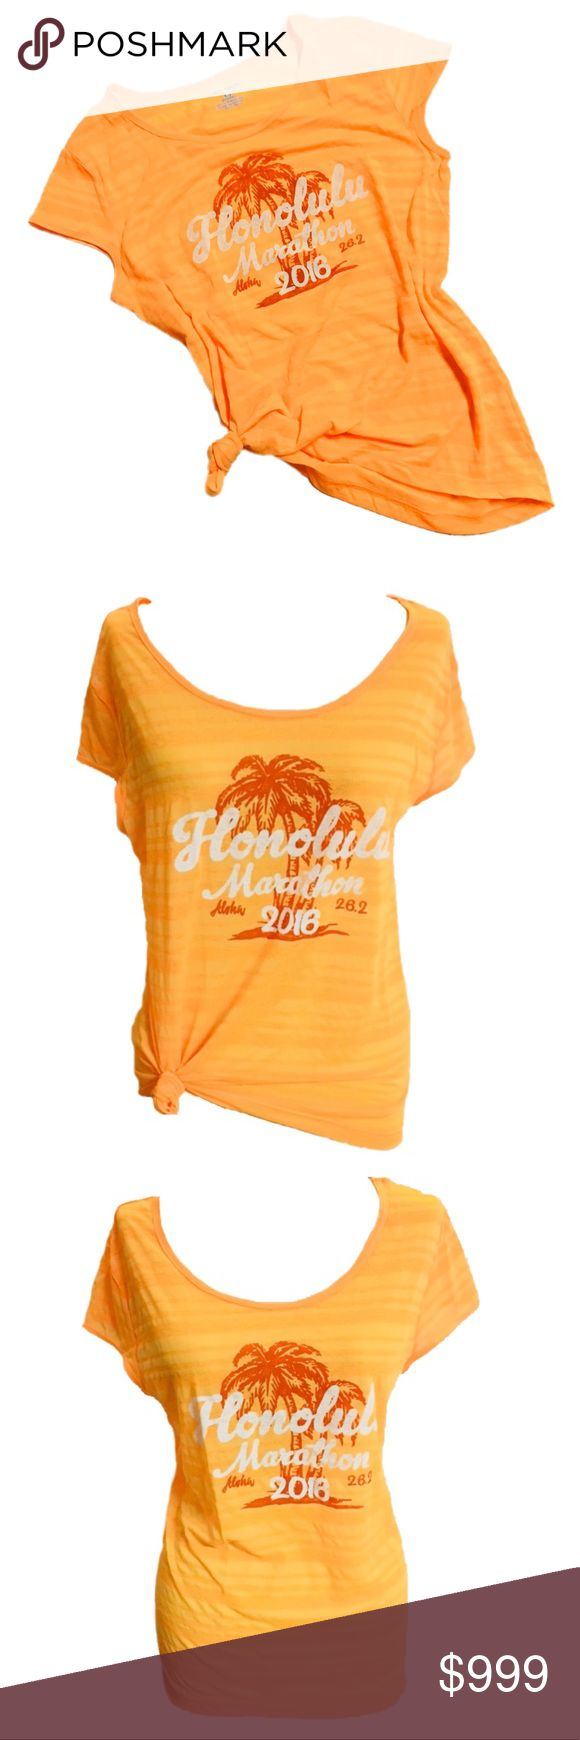 🎉SALE🎉 New Women's Sports Running T-Shirt Tee Honolulu Mara-thon Sports Running 2016 Cool Breeze Women's Tee T-shirt Top  CONDITION: New with tags COLOR: Neon Orange  PRODUCT DETAILS:   Layer over a tank top or sports bra for that go to workout look. Great for fitness, working out, Zumba, running, etc..  Lightweight - Great for running & exercise Sheer striped design 100% Polyester 2016 Honolulu Mara-thon Design  #honolulu, Waikiki, Aloha, tropical, Hawaii Tops Tees - Short Sleeve